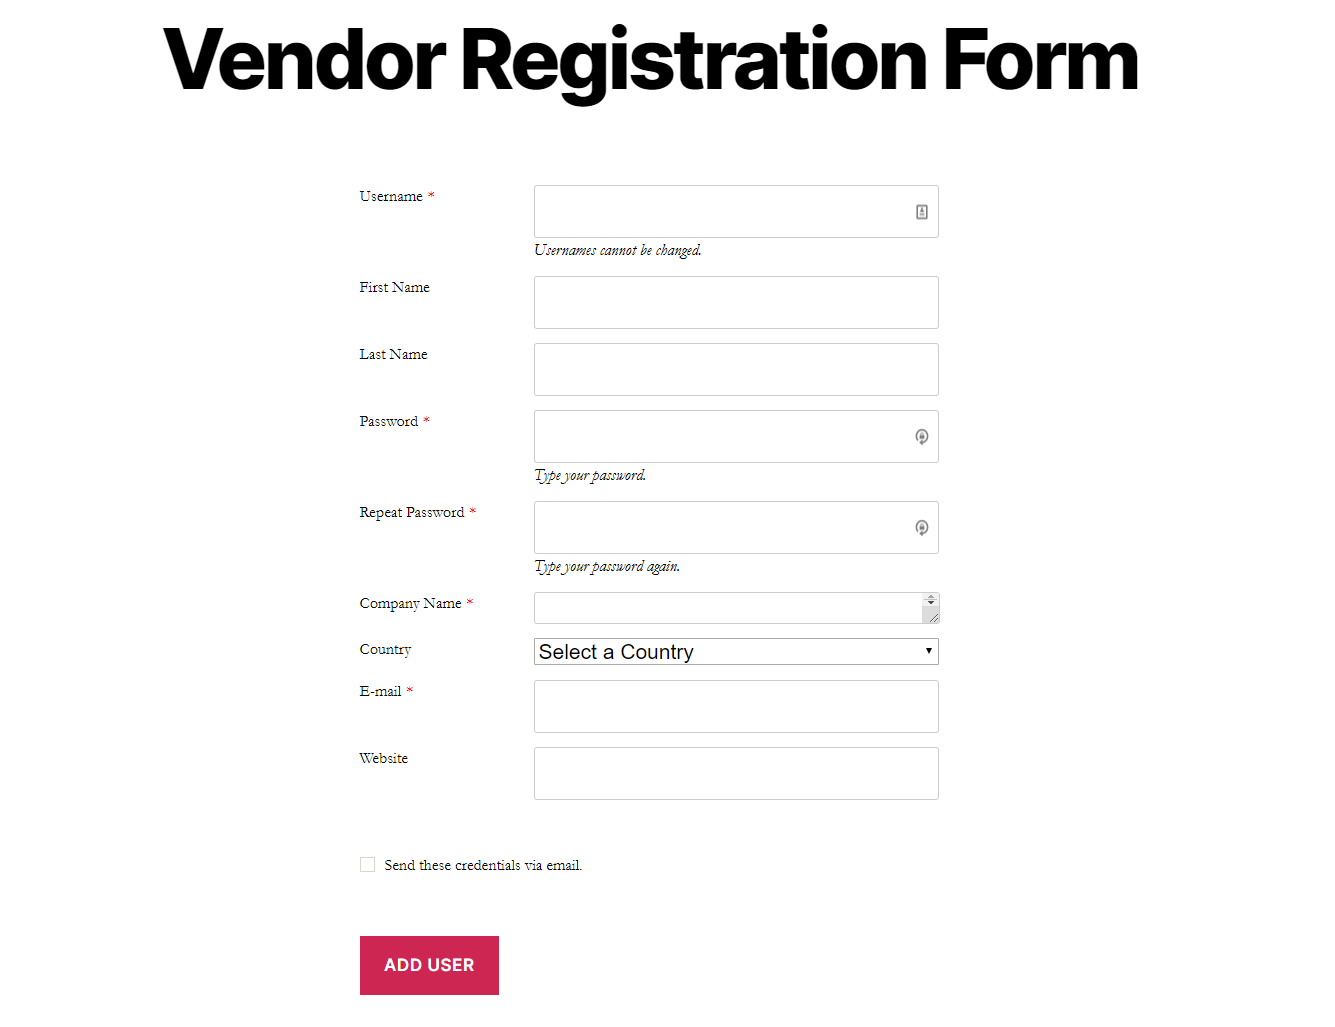 Preview of the vendor registration form